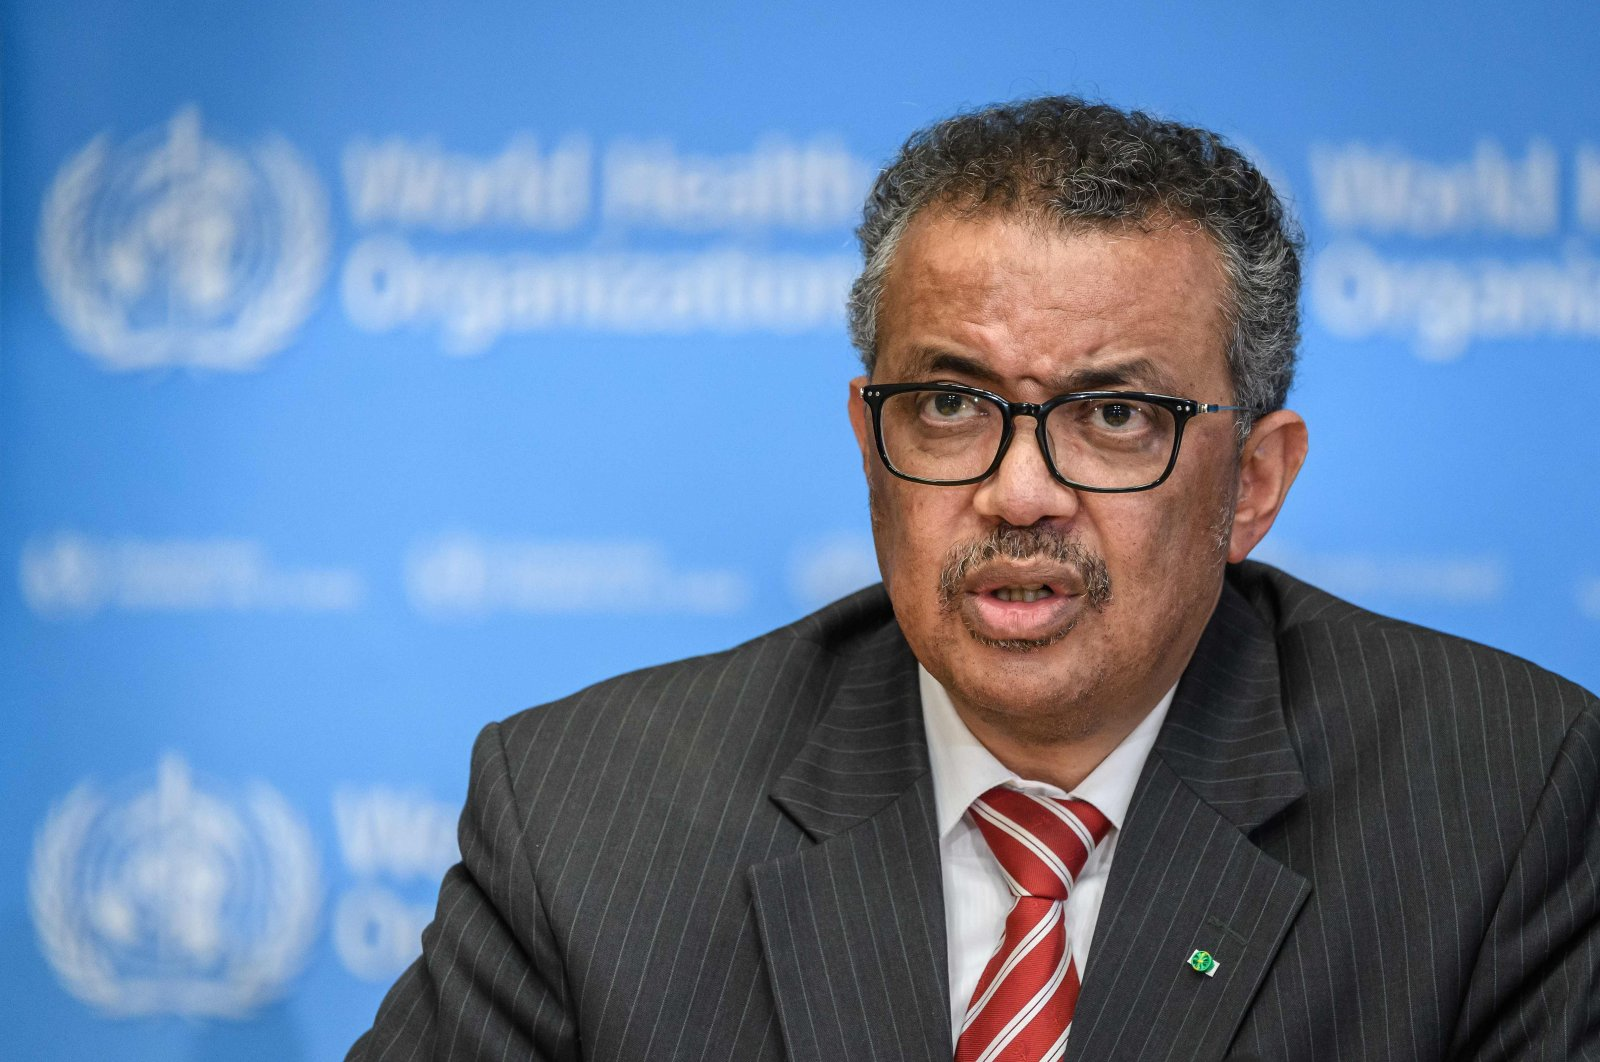 World Health Organization (WHO) Director-General Tedros Adhanom Ghebreyesus attends a daily press briefing on COVID-19 virus at the WHO headquaters, Geneva, March 11, 2020. (AFP Photo)